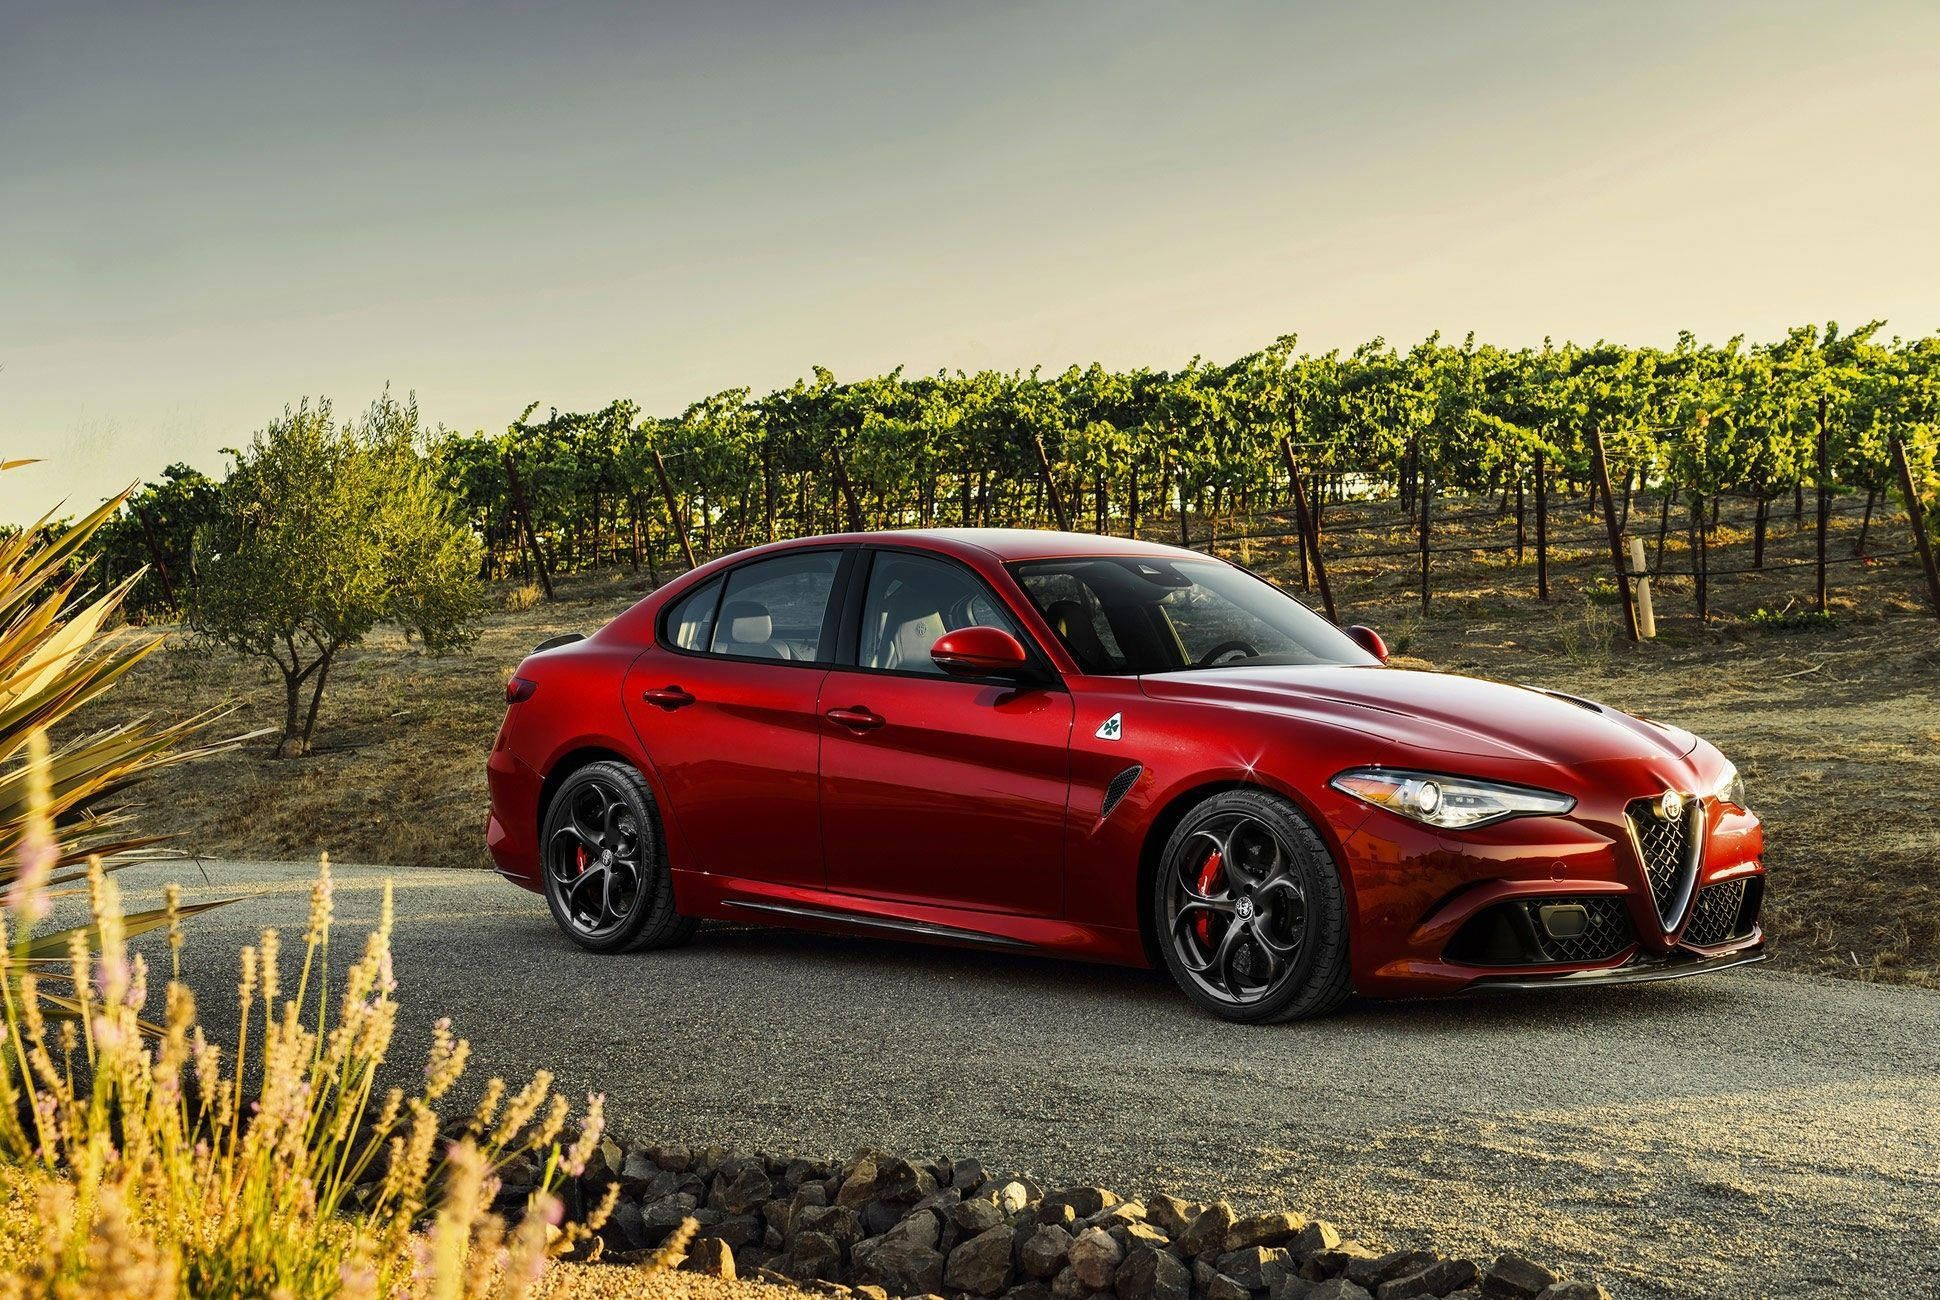 2019 Alfa Romeo Giulia Redesign Price And Review Alfaromeo Alfa Romeo Giulia Quadrifoglio Alfa Romeo Quadrifoglio Alfa Romeo Giulia